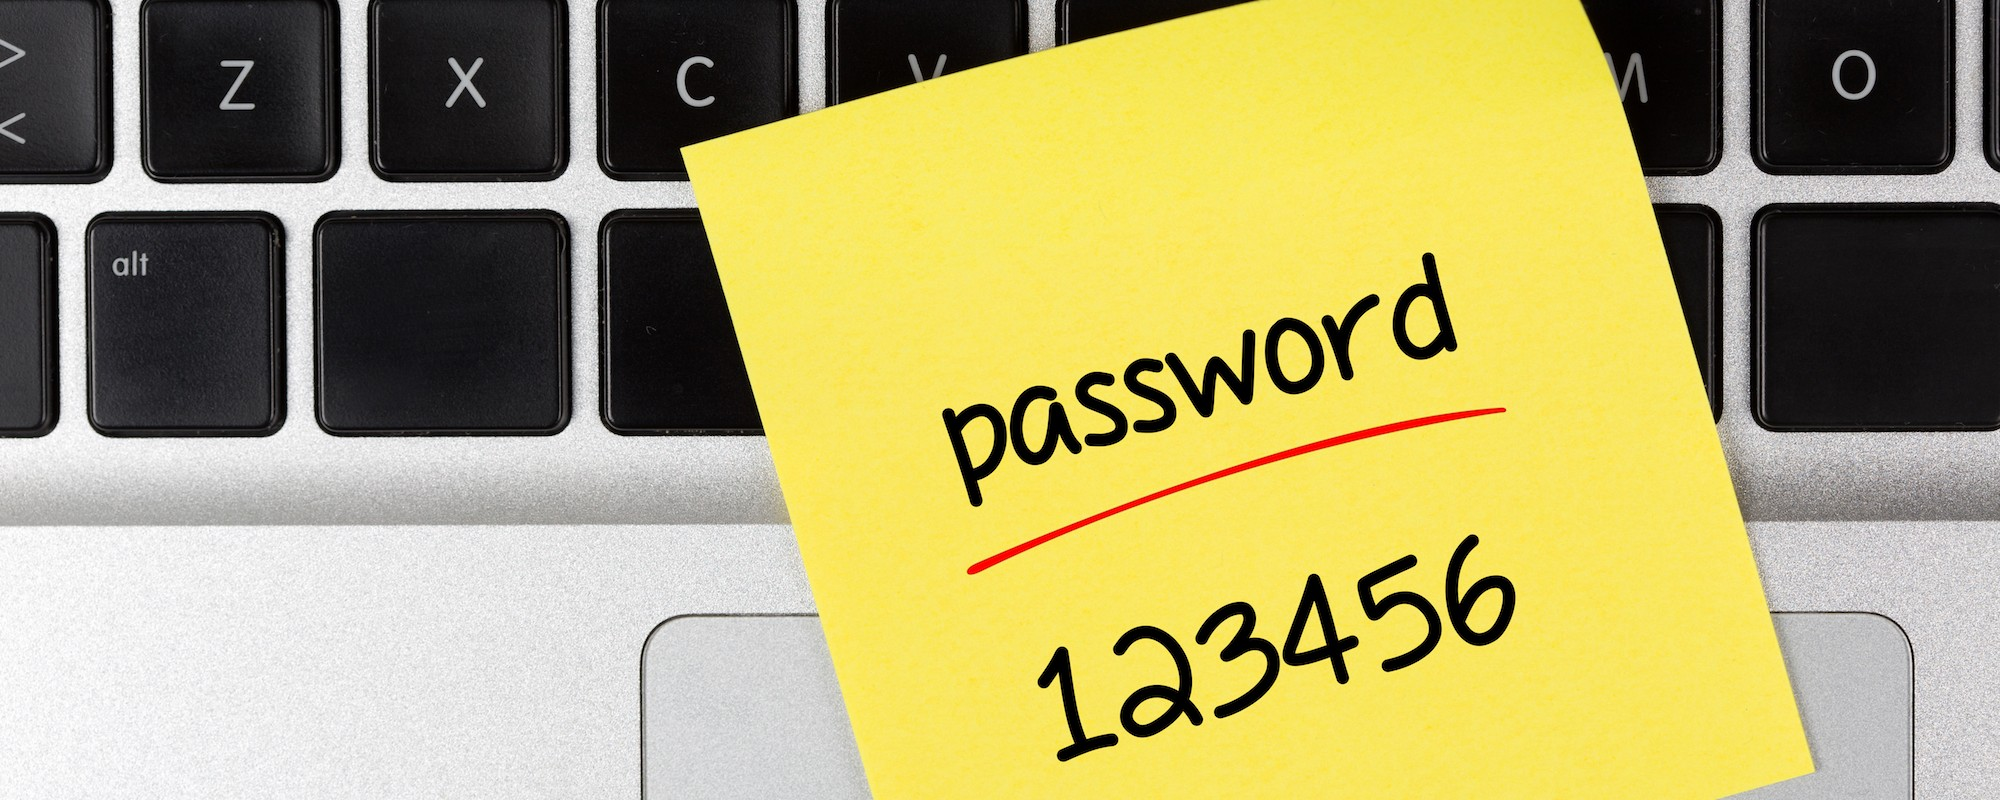 Donald Is Now One Of The Top 25 Most Commonly Used Passwords